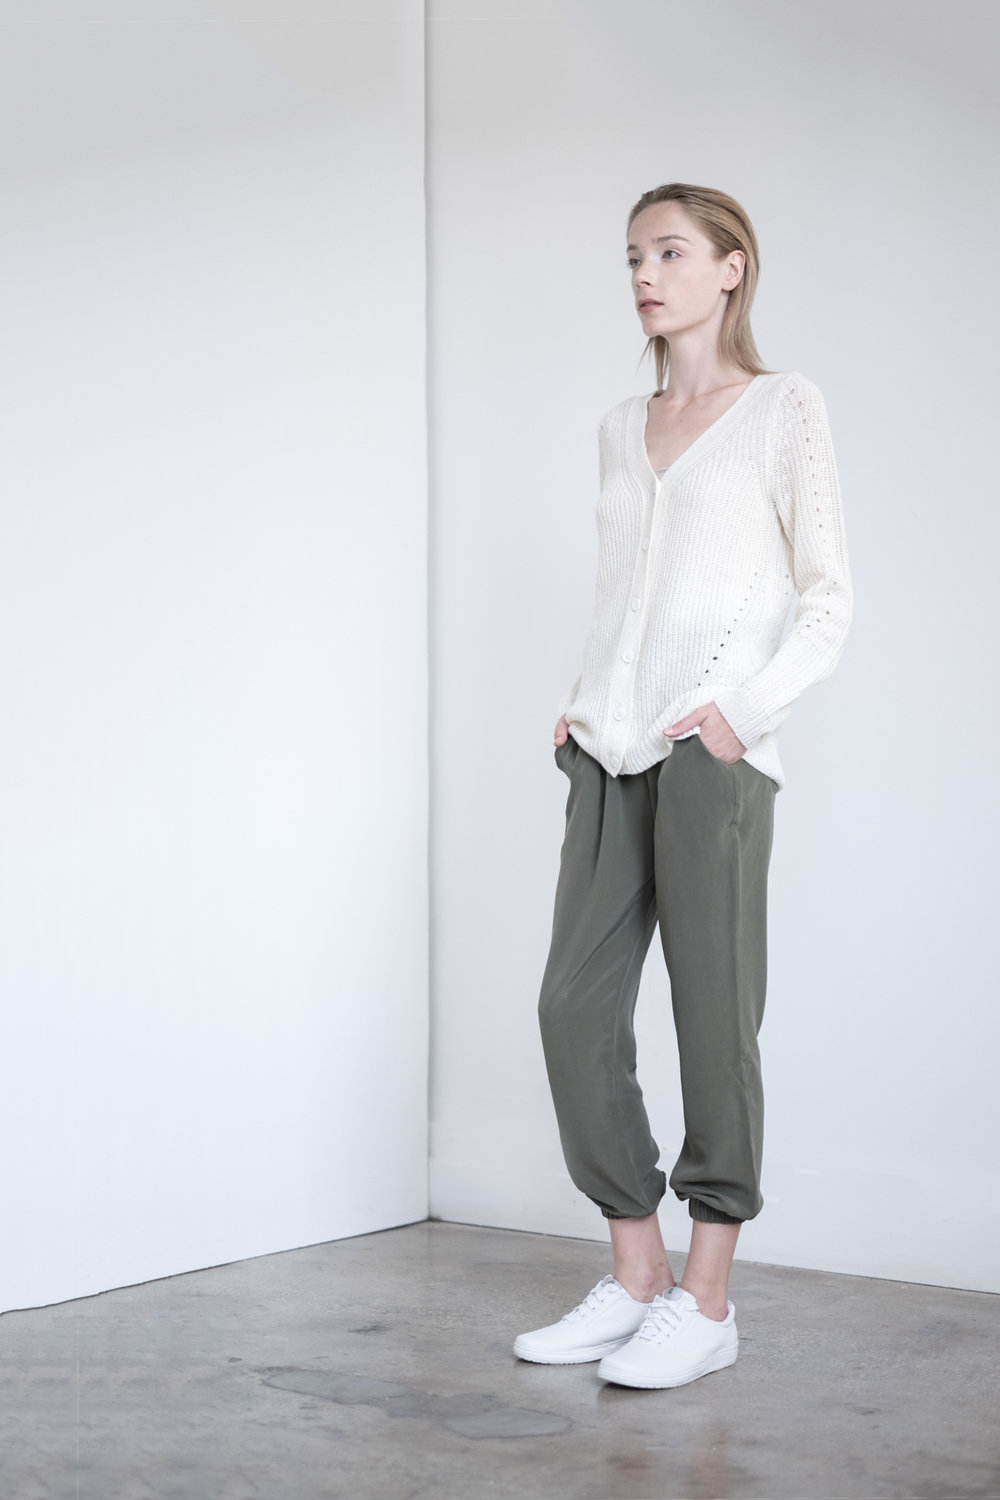 LOOK 33   TOP:   2269  / Bone -     Fisherman rib vee cardigan    BOTTOM:   2203  / Clover -    Jogger pants in 100% Silk.